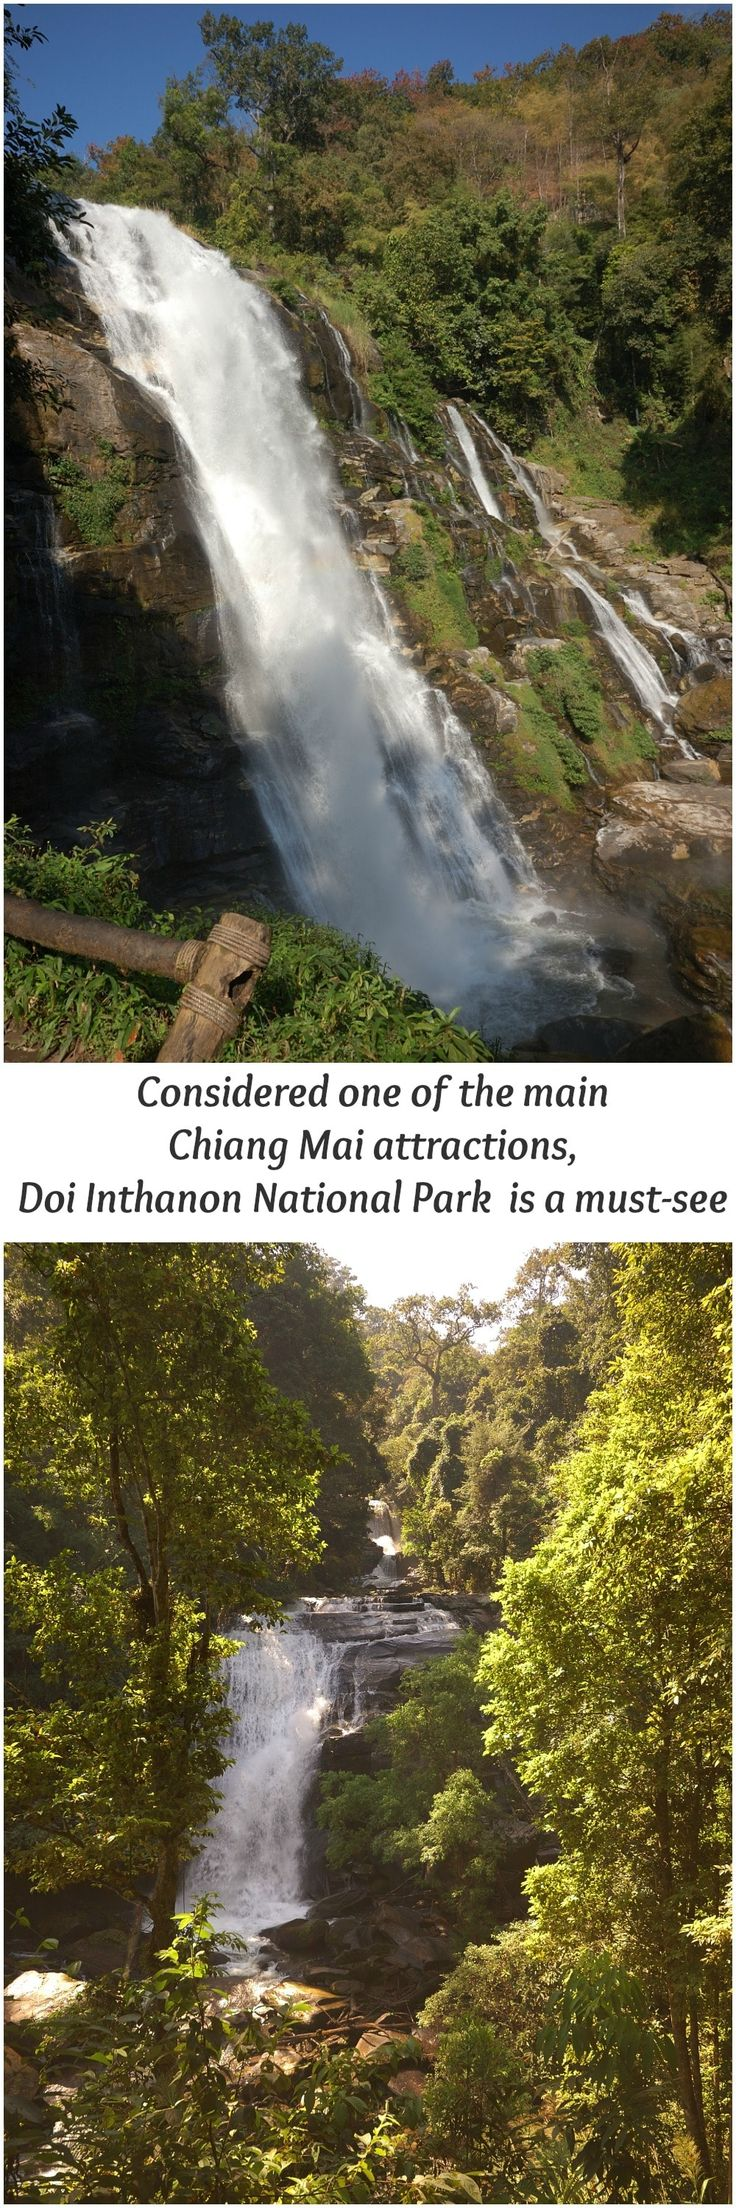 Considered one of the main Chiang Mai attractions, Doi Inthanon National Park is a must-see.